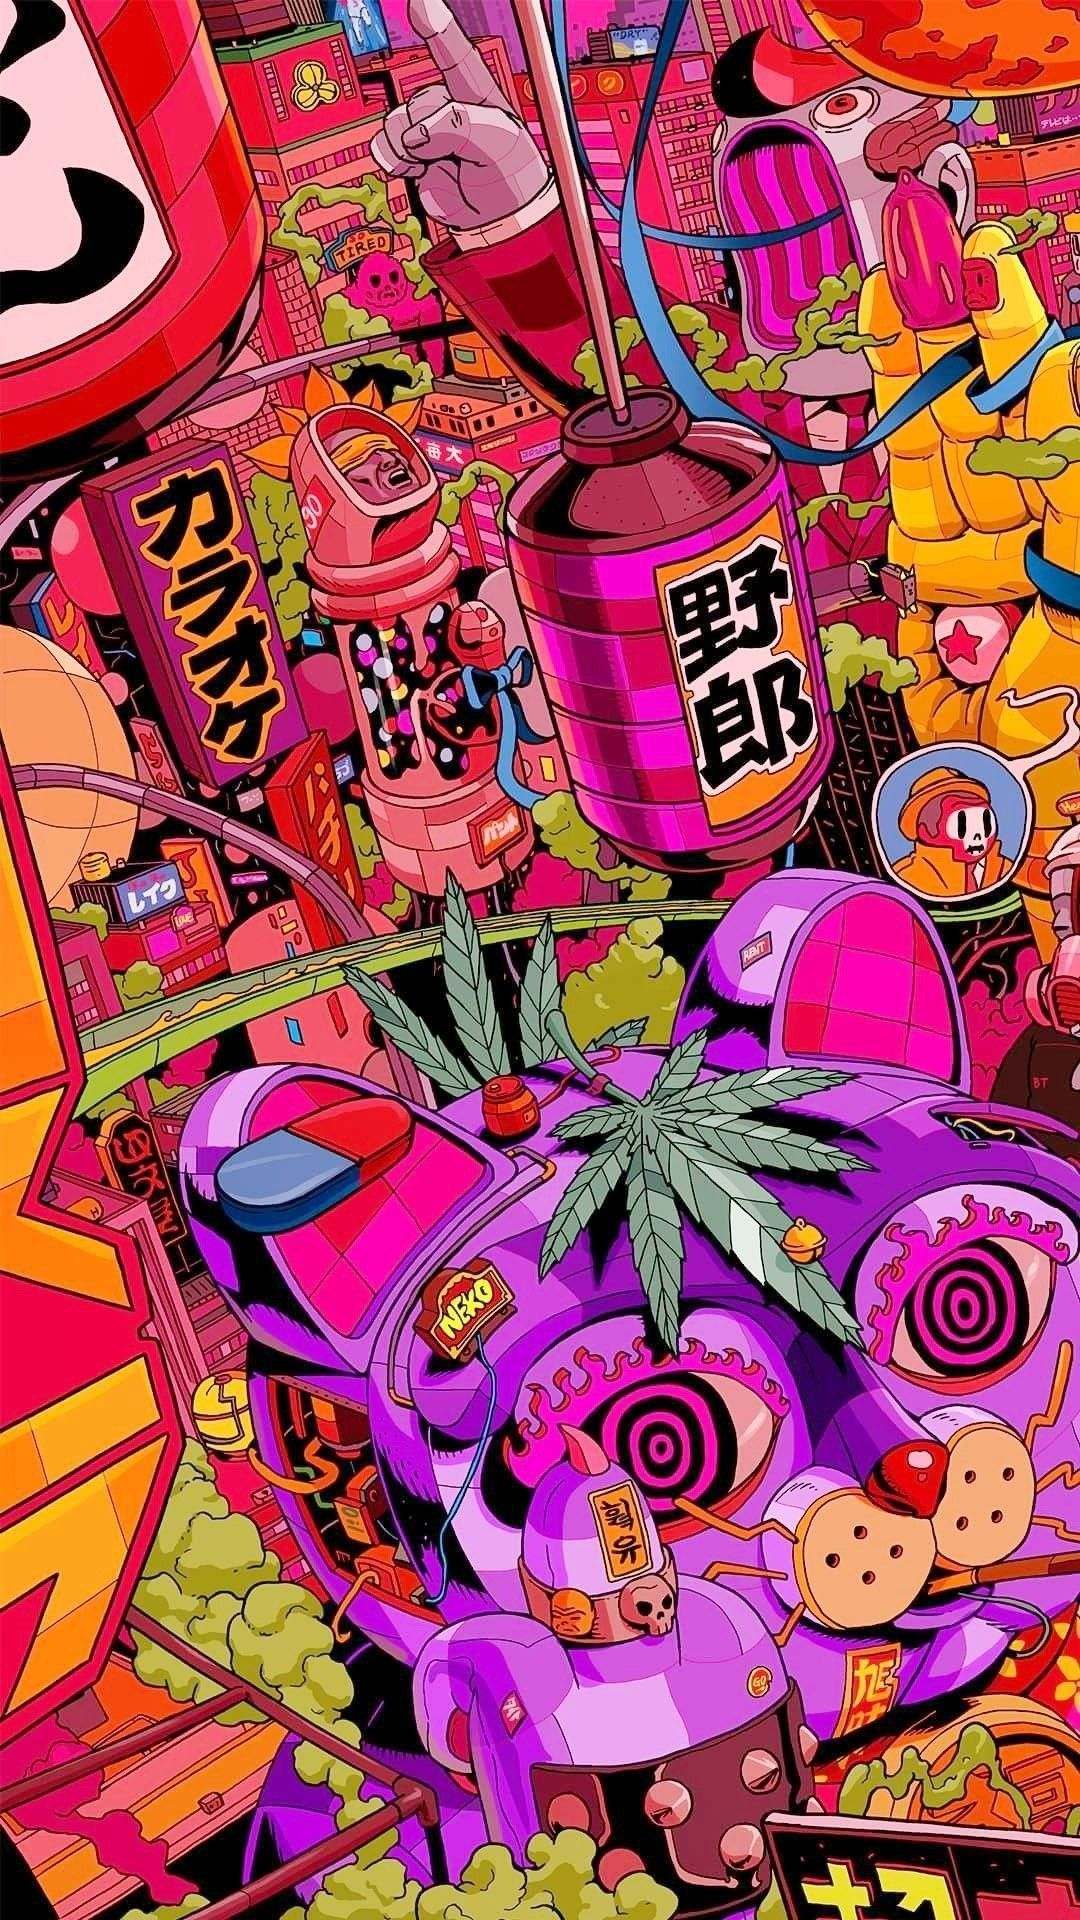 Pin On Learn Posters 3 Download wallpaper anime graffiti